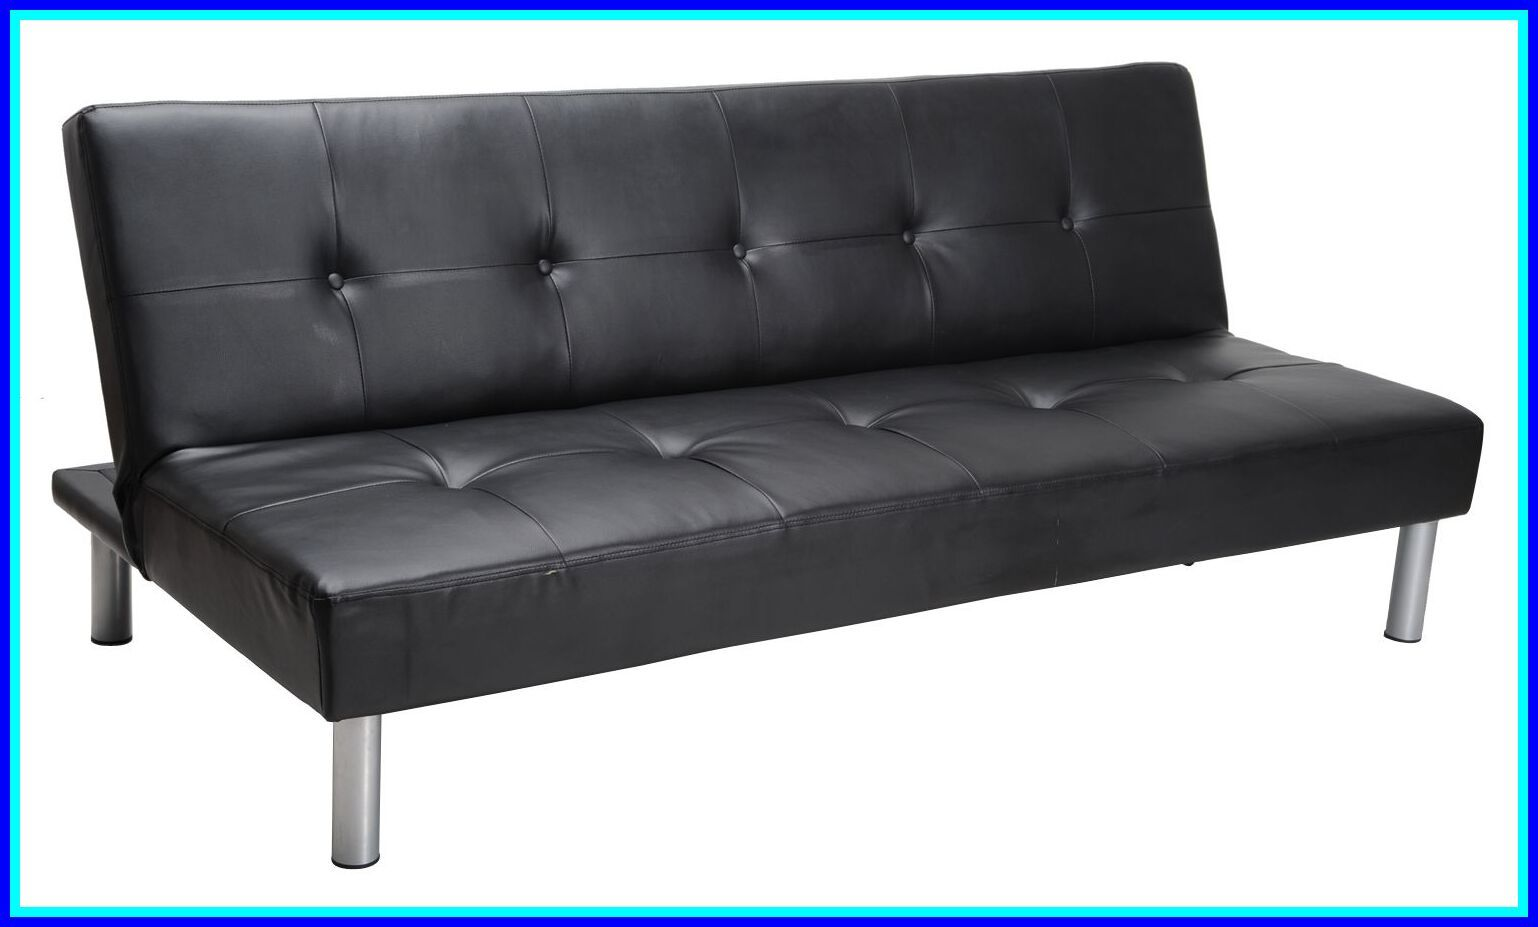 76 Reference Of Sofa Bed Amazon Canada In 2020 Black Leather Sofa Bed Leather Sofa Bed Sofa Bed Black